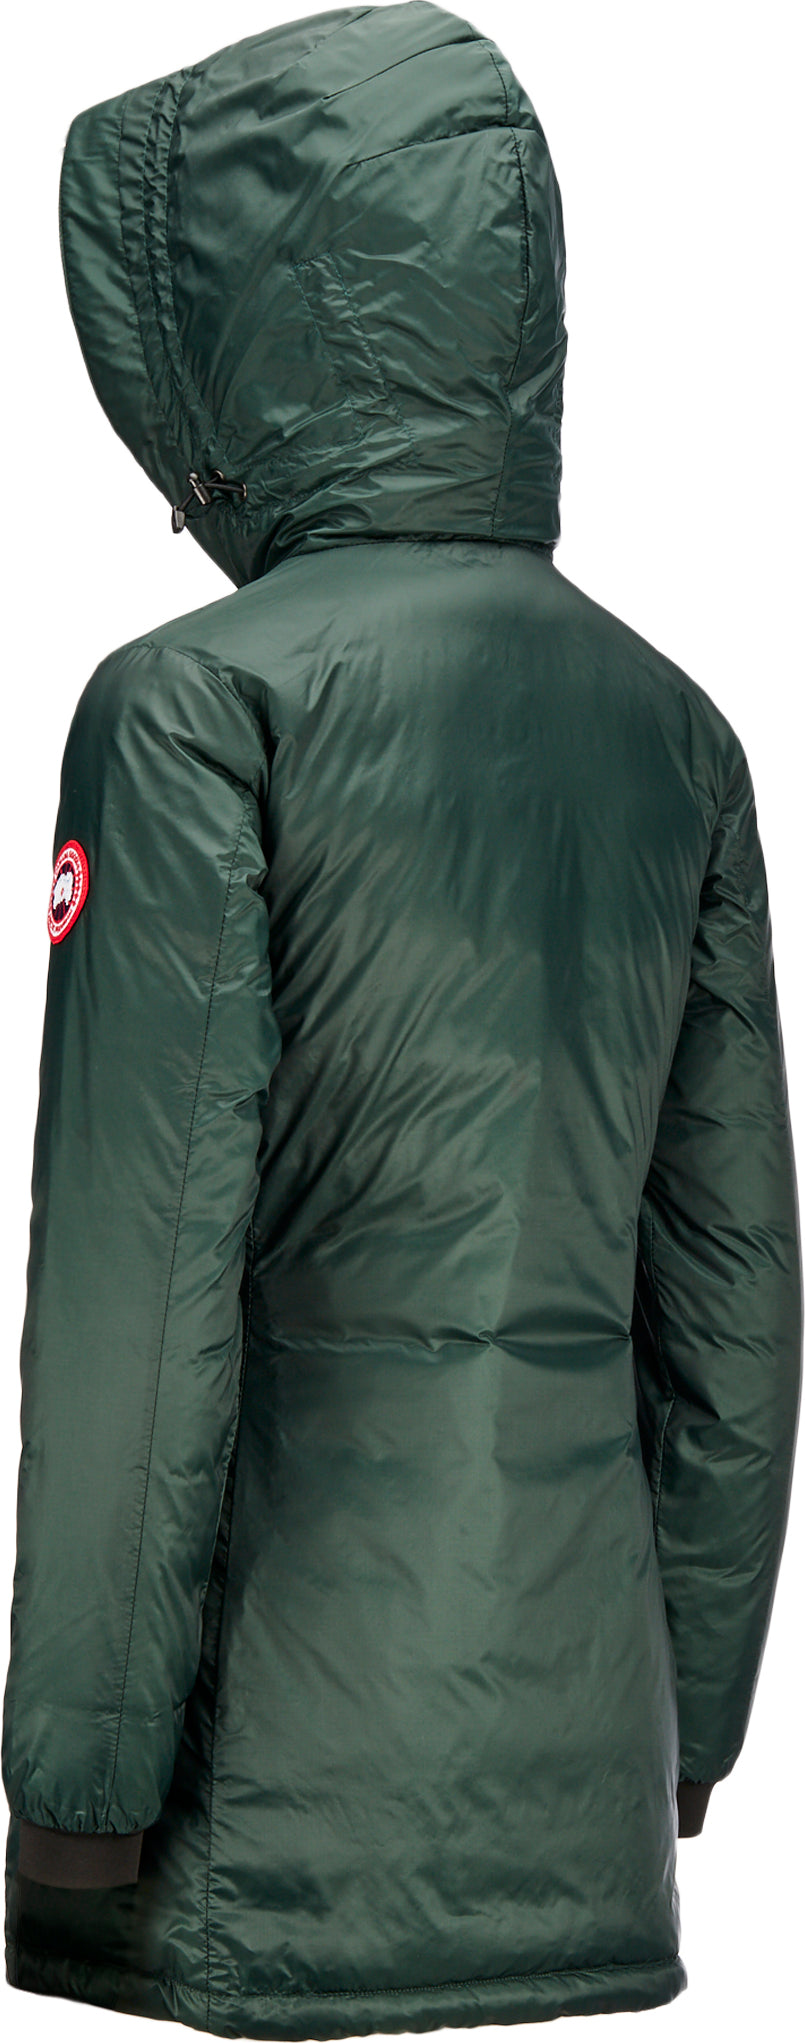 89b3a3d04c4 Canada Goose Camp Down Hooded Jacket - Women's | Altitude Sports